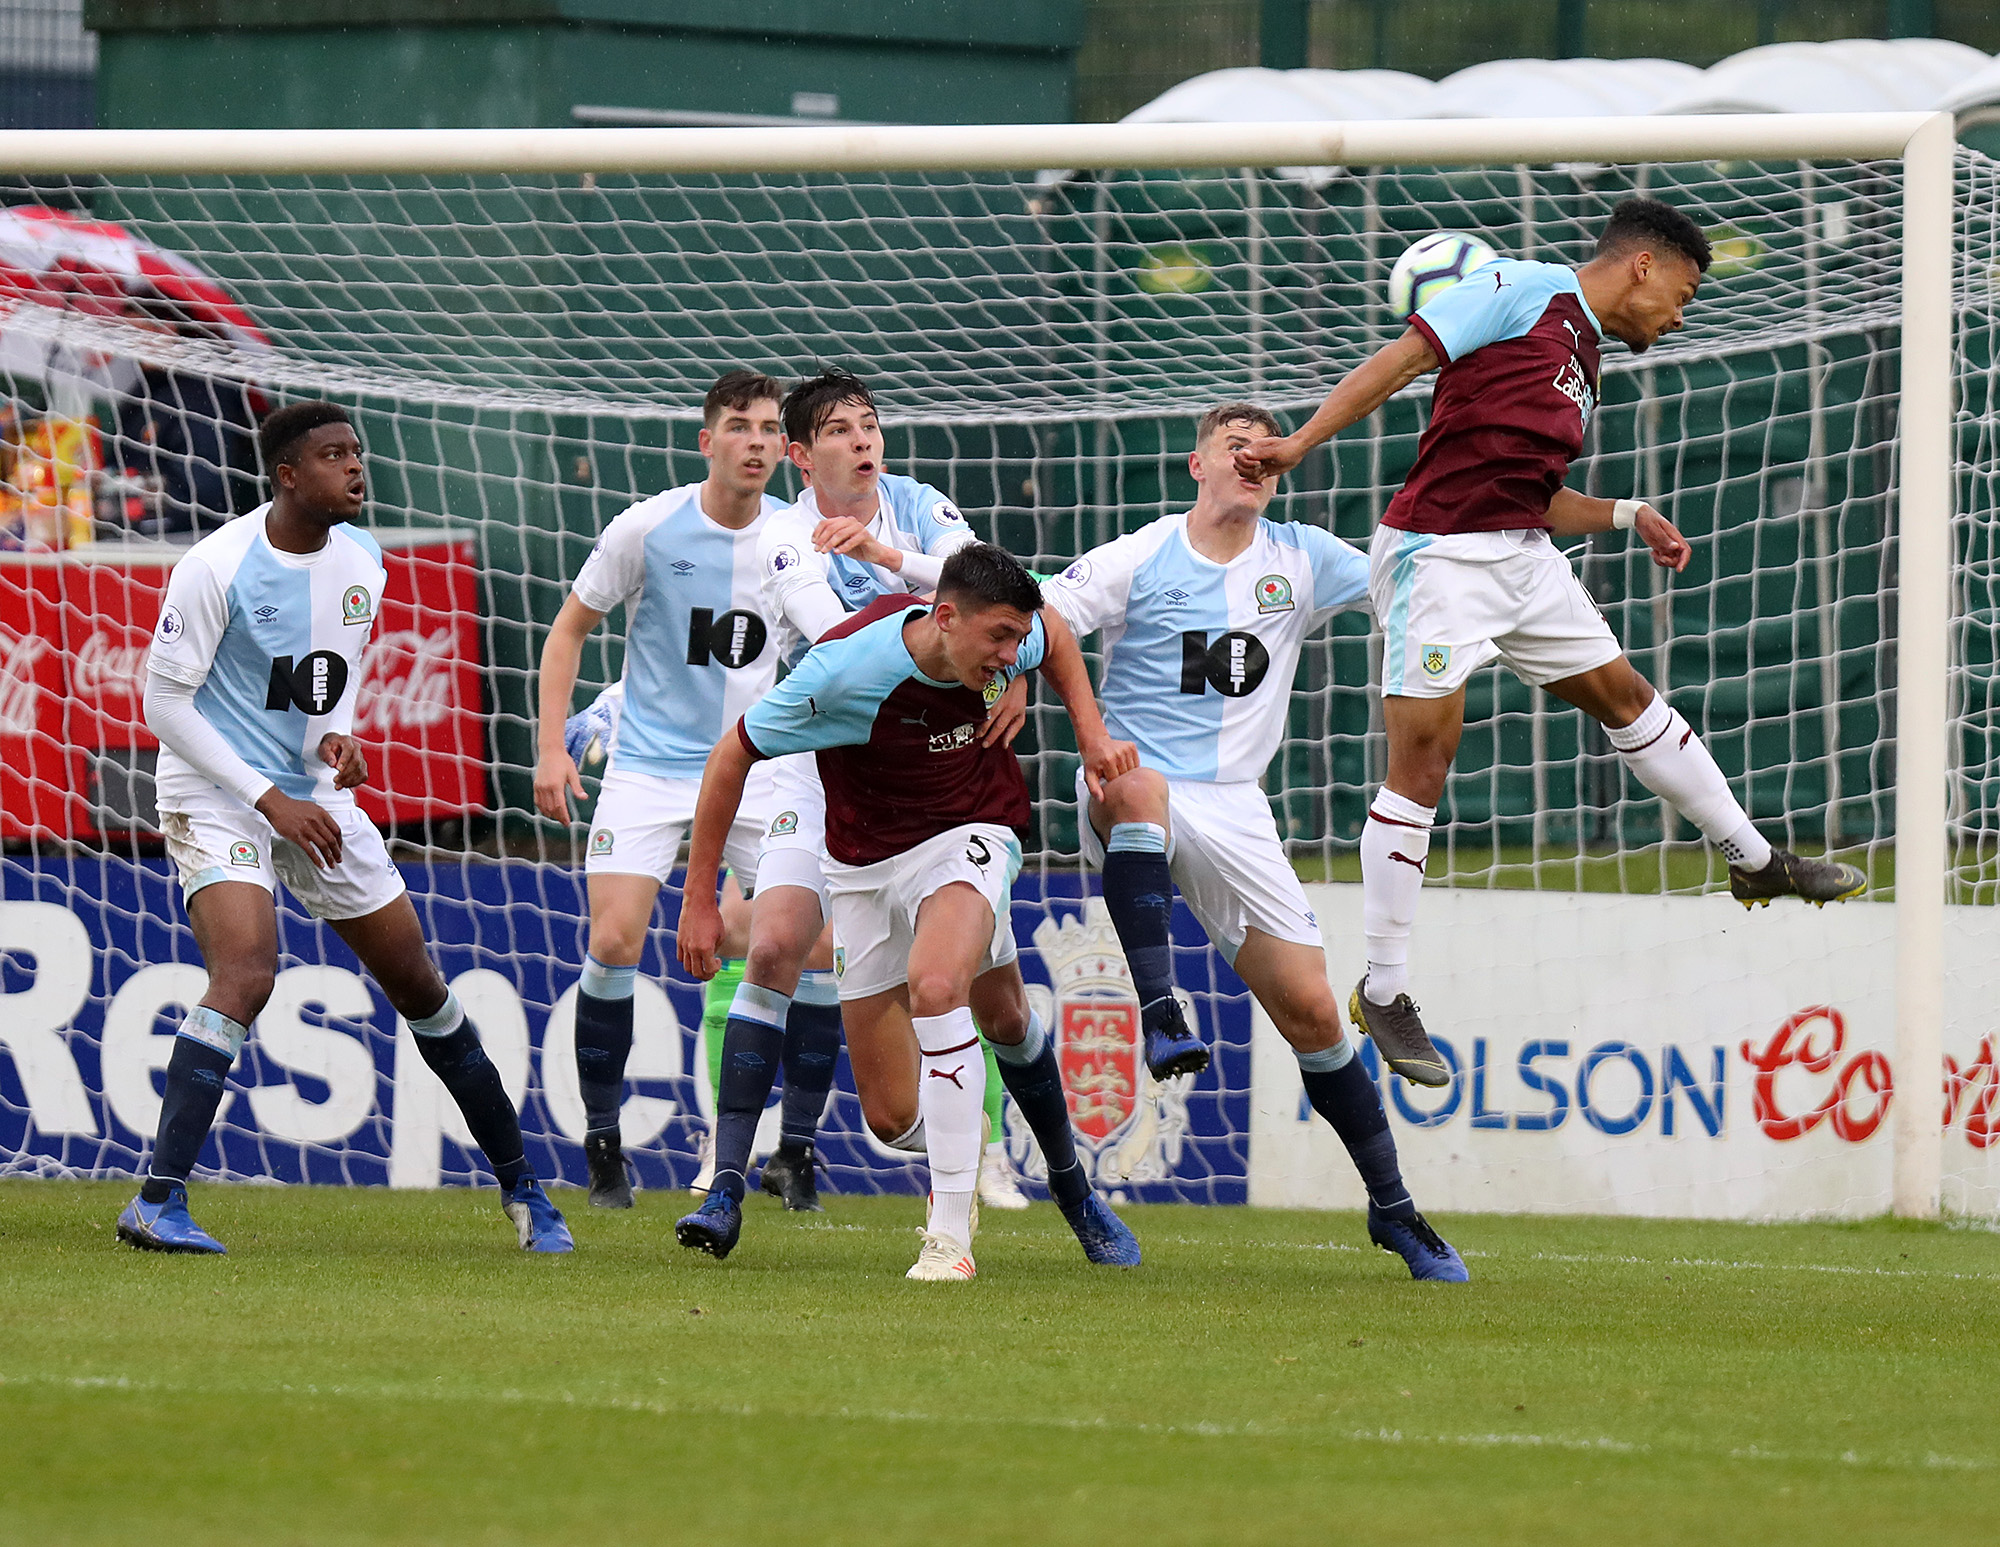 We couldn't have given any more, says Burnley boss Stone